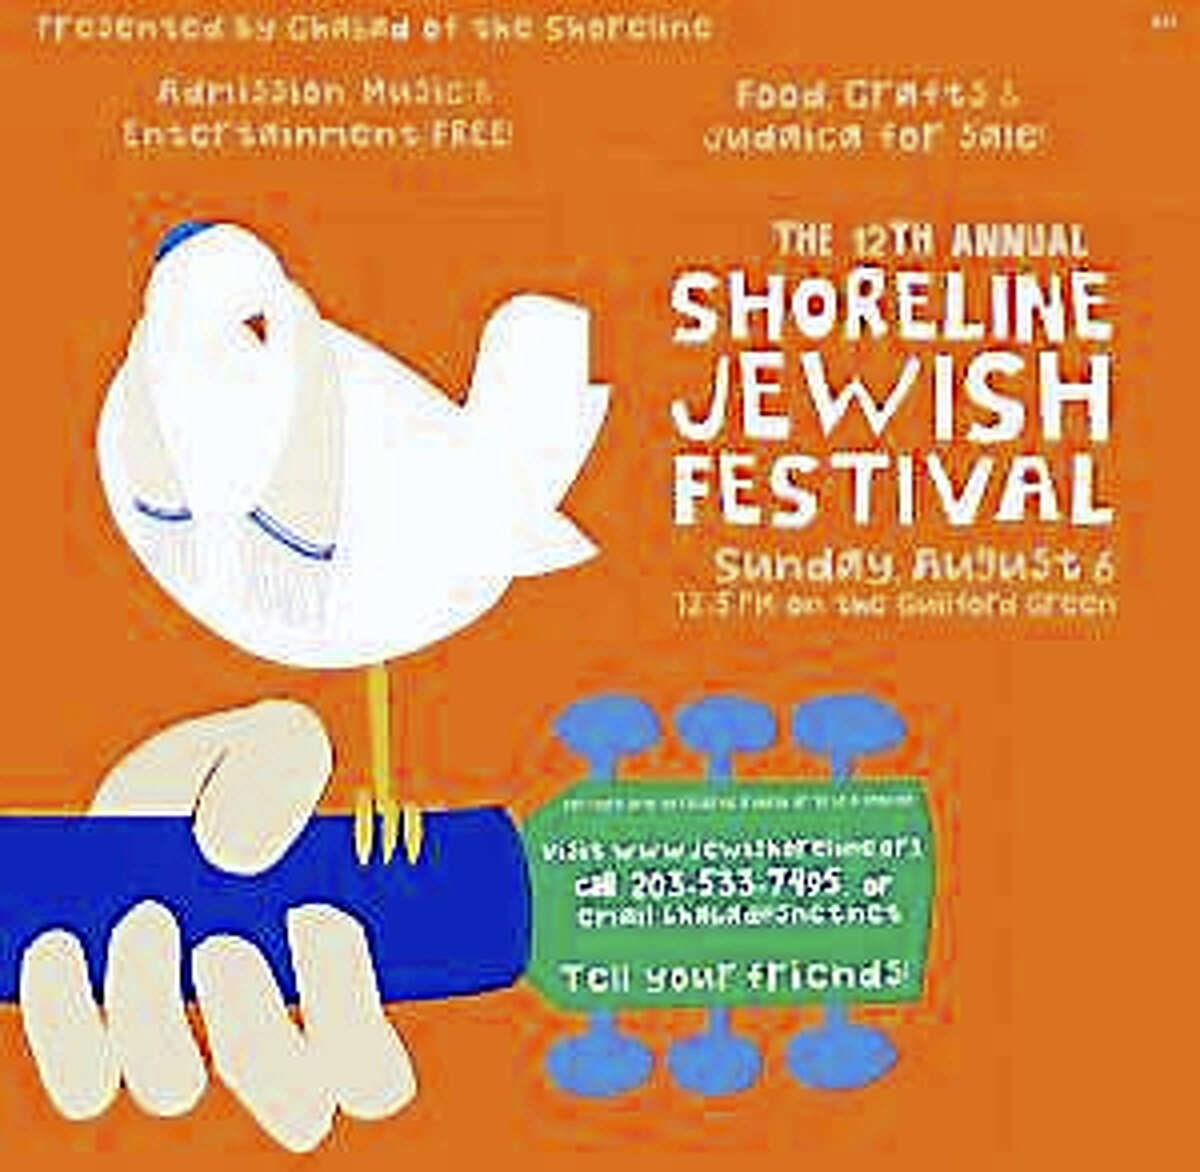 The Shoreline Jewish Festival will be held Sunday, Aug. 6 on the Guilford Green.